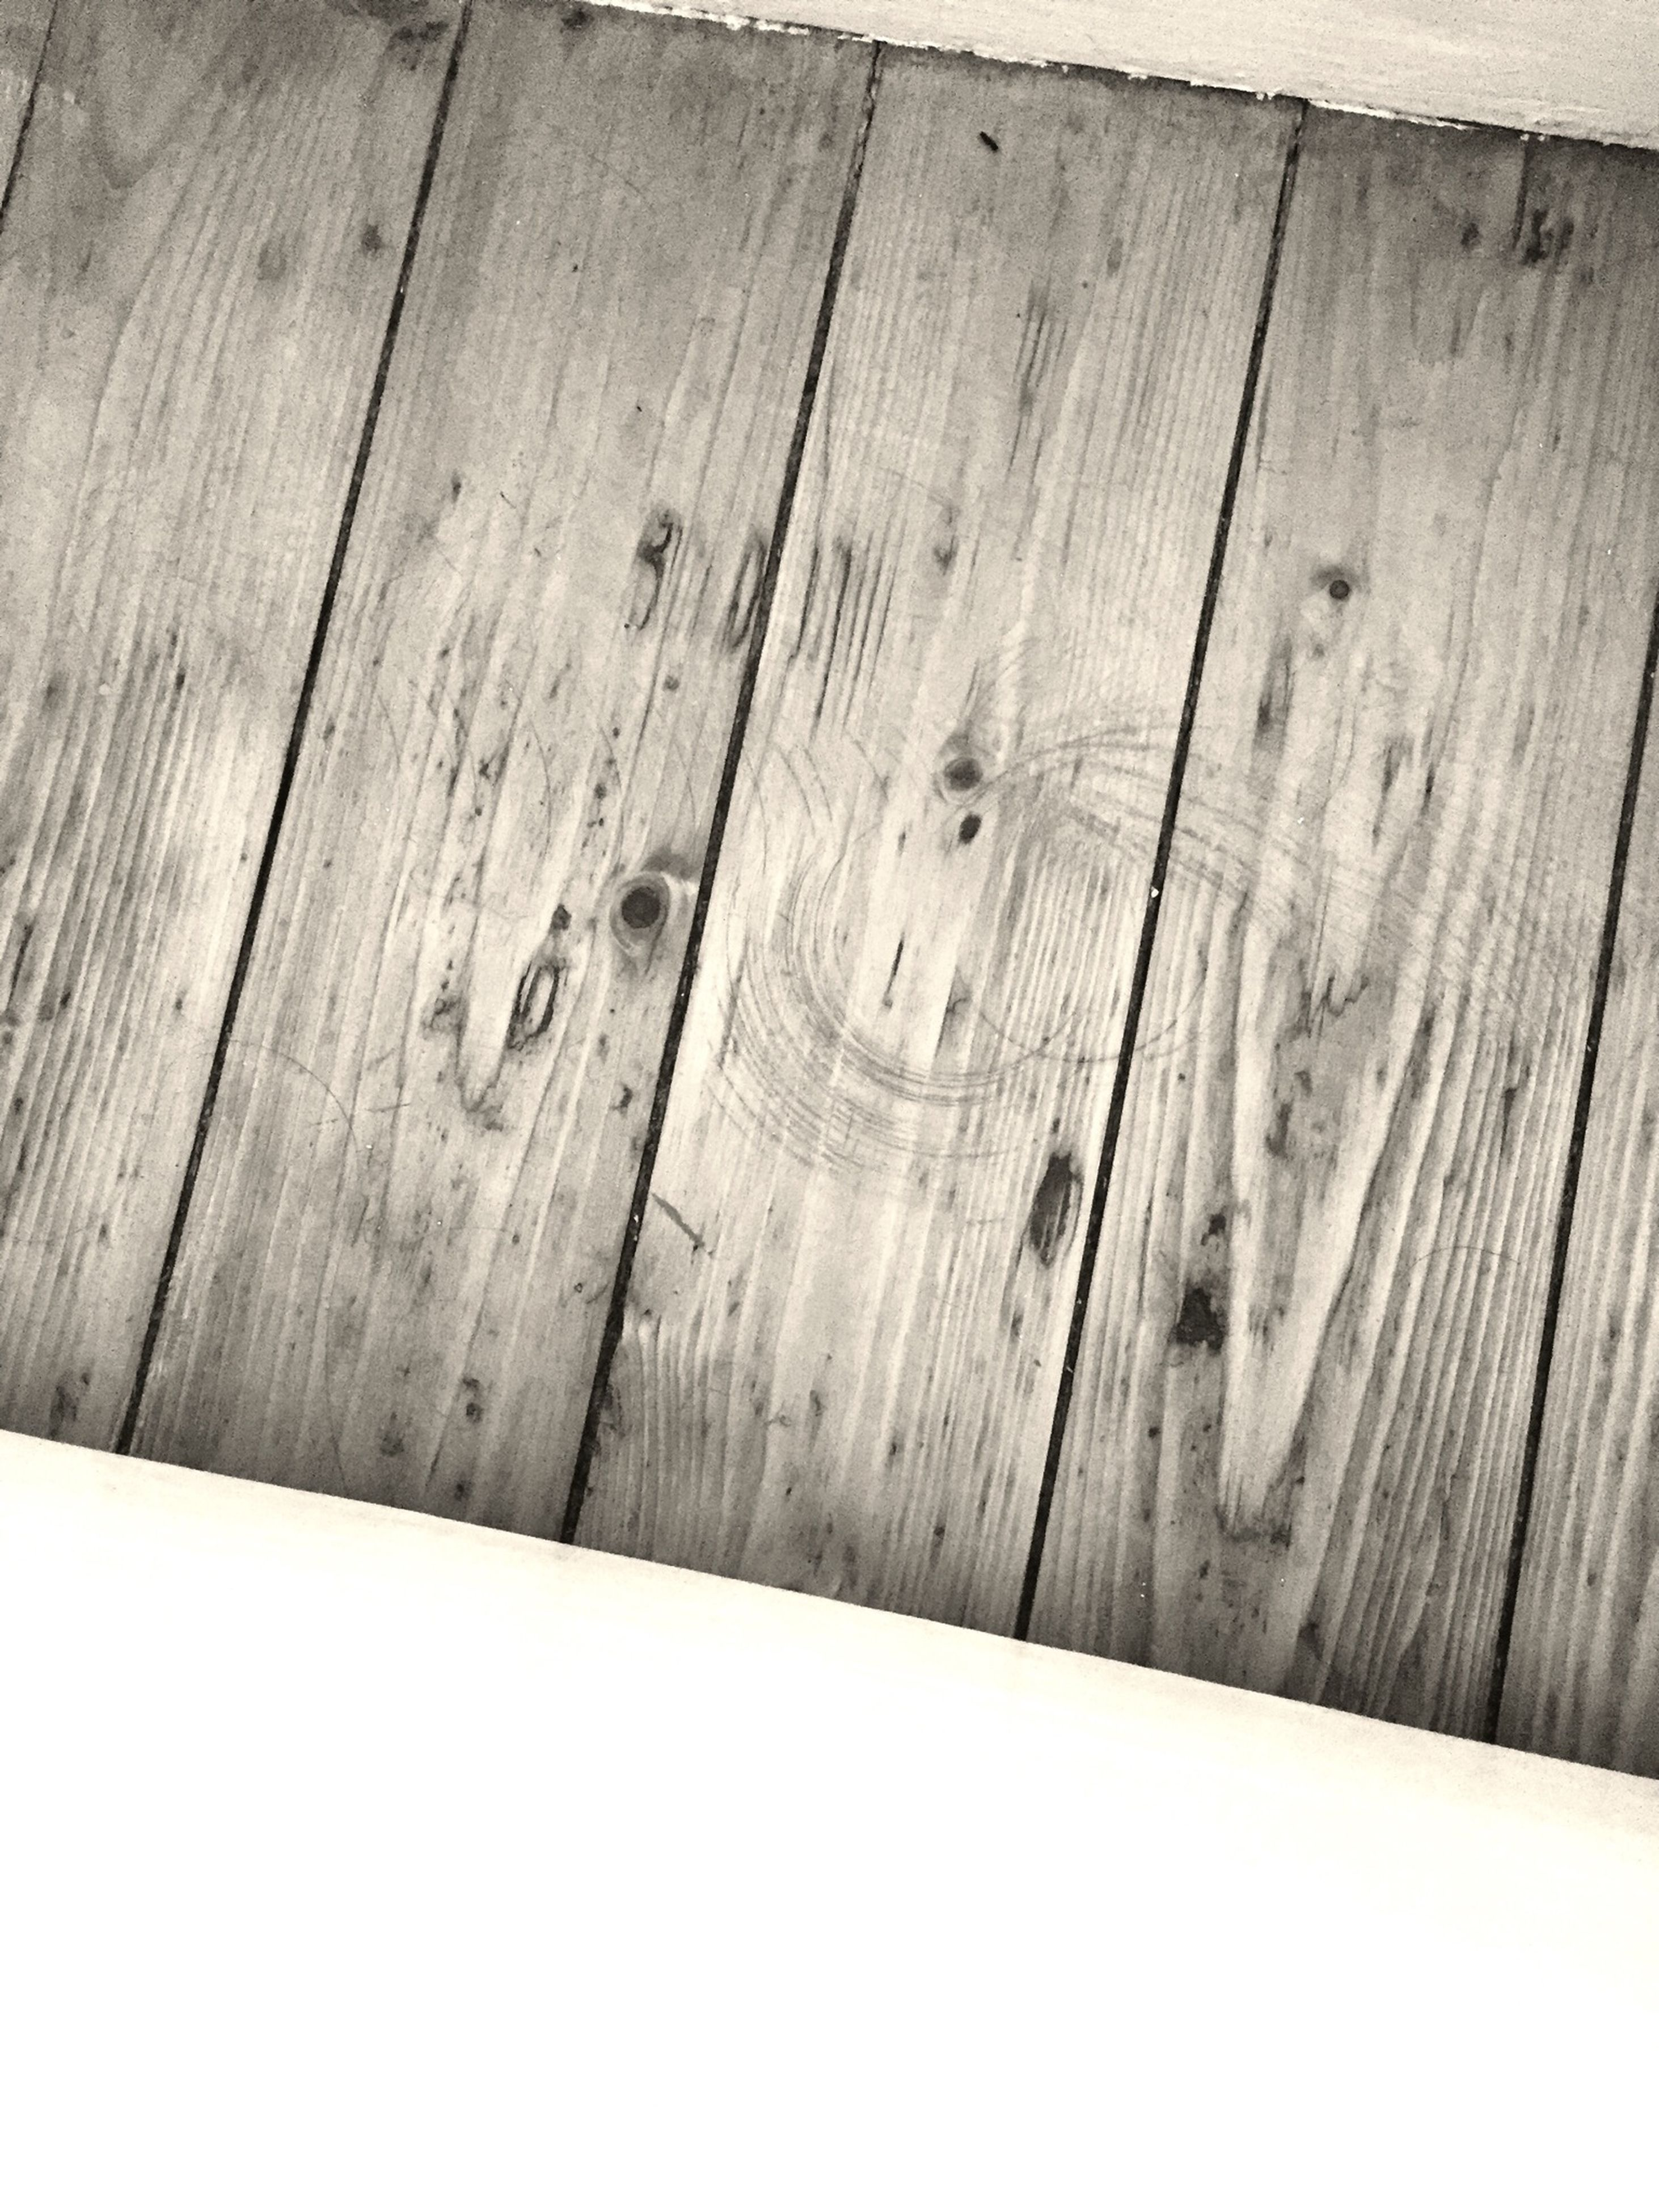 wood - material, wooden, plank, wood, full frame, backgrounds, textured, indoors, close-up, pattern, high angle view, hardwood floor, brown, no people, wood grain, boardwalk, table, directly above, day, still life